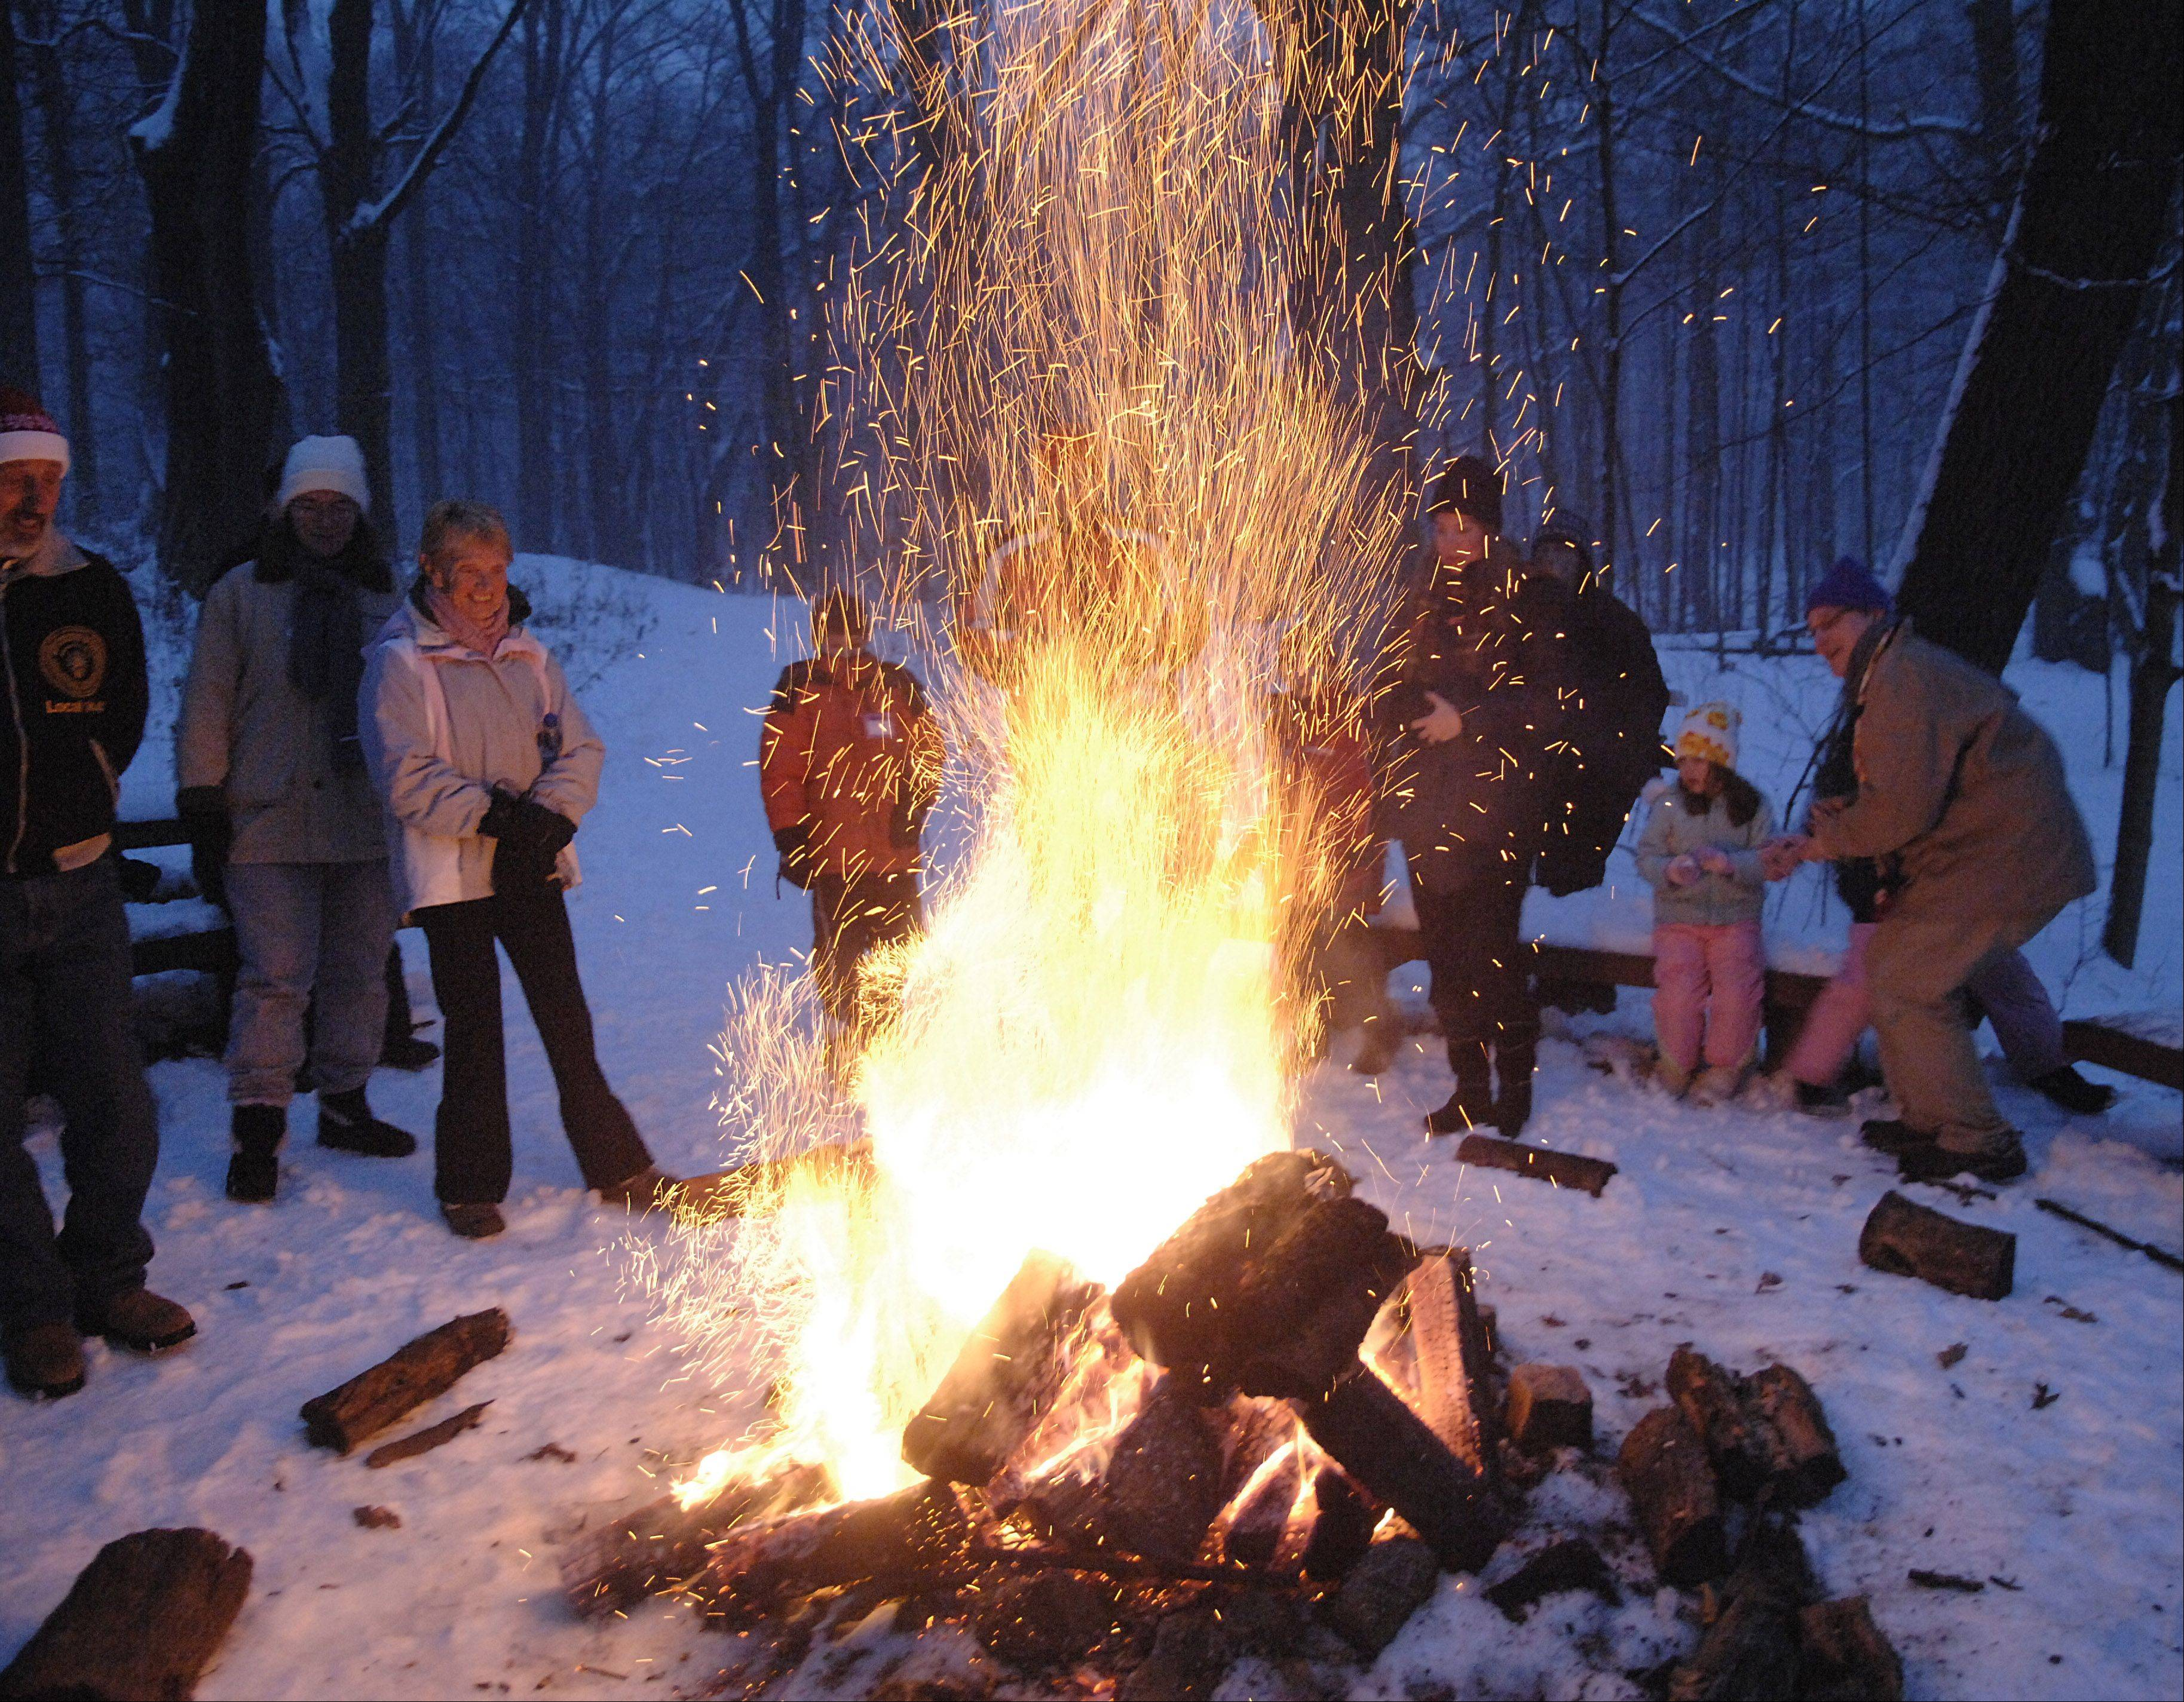 Listen to tales around the campfire on Friday, Dec. 21, when the Forest Preserve District of Kane County holds its annual Winter Solstice Bonfire. Last year's was at Tekakwitha Woods; this year, it will be at LeRoy Oakes in St. Charles.